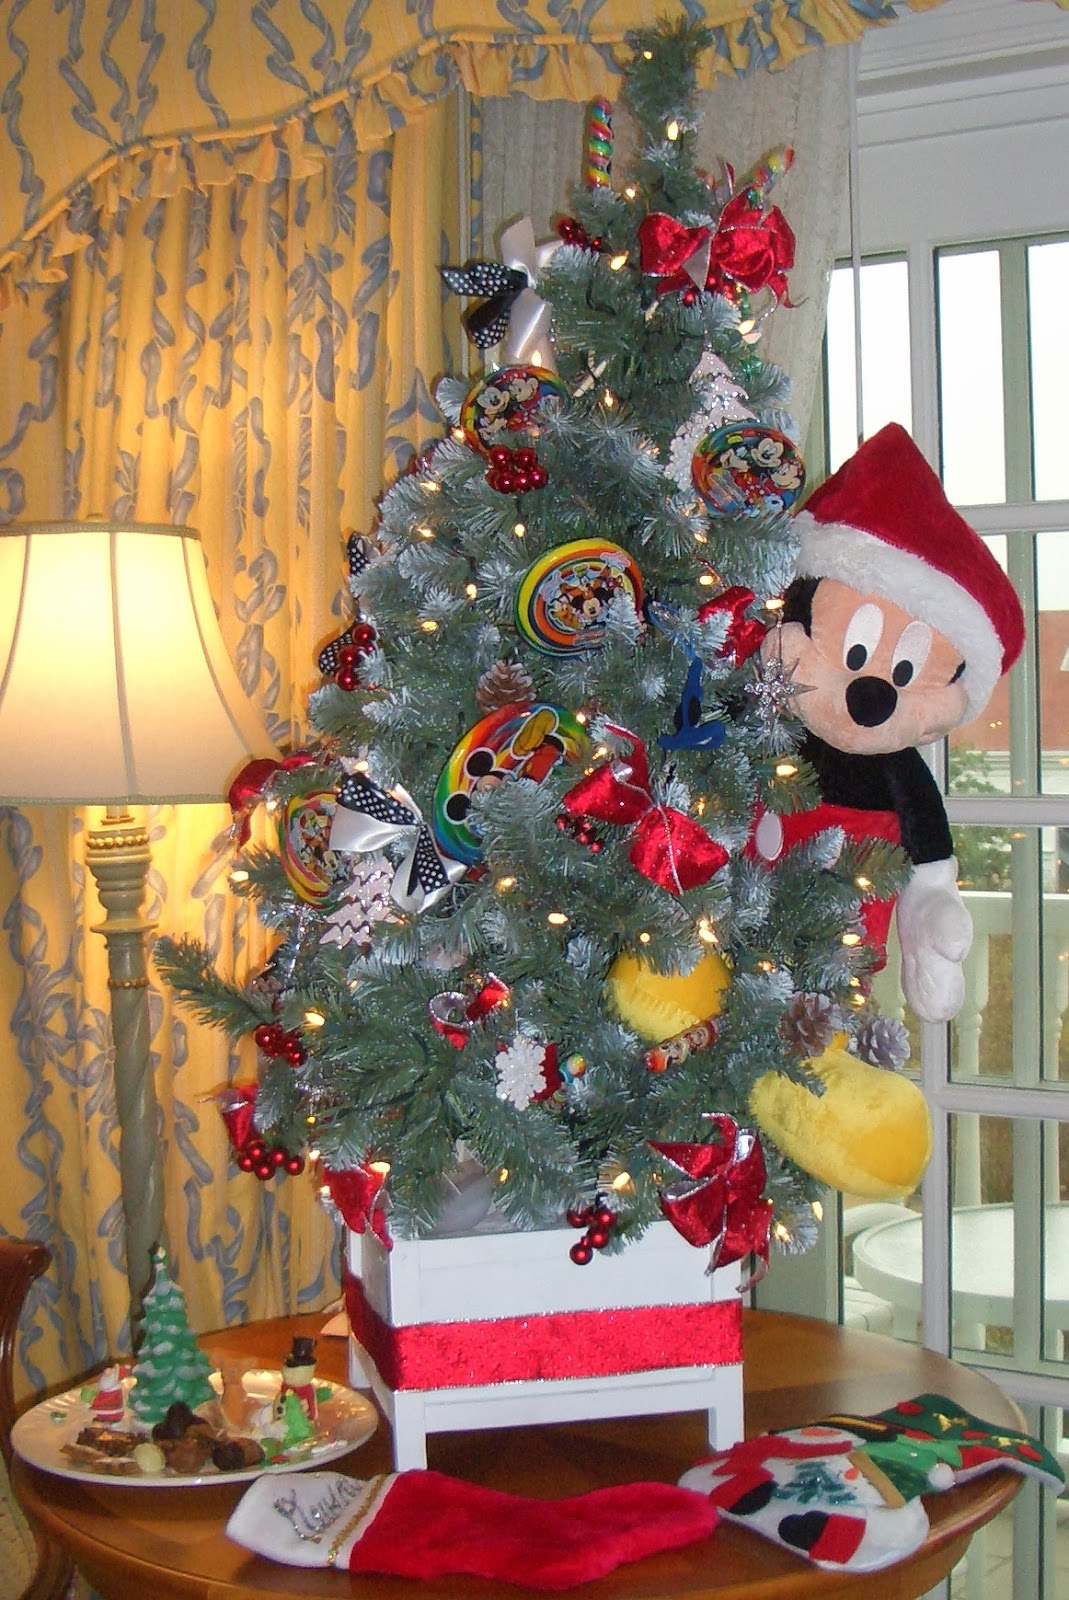 Disney Floral & Gifts Creates Christmas Magic That Lasts a Lifetime ...